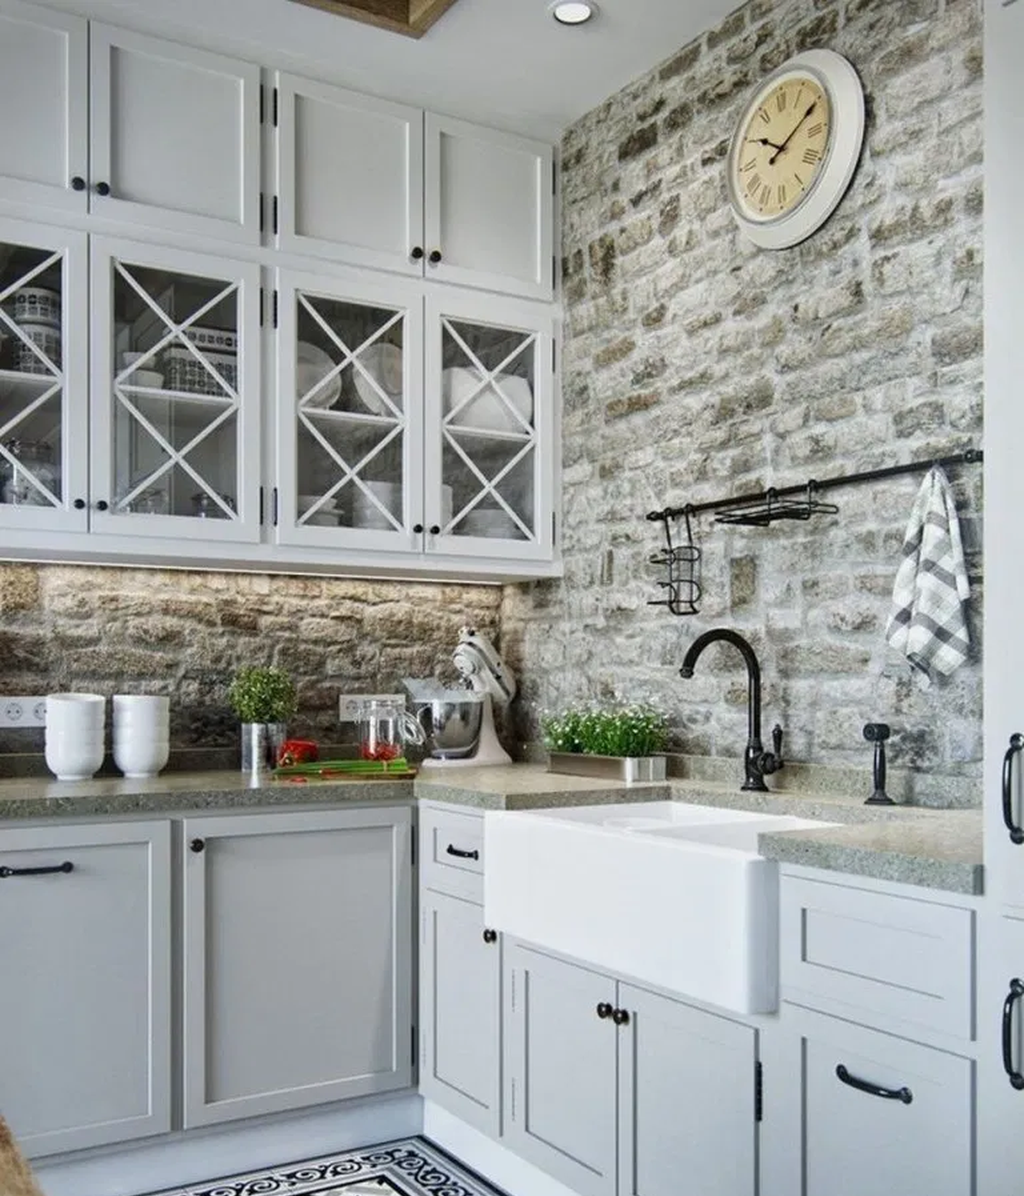 89 DIY Farmhouse Kitchen Cabinets Makeover Ideas - Decortutor.com